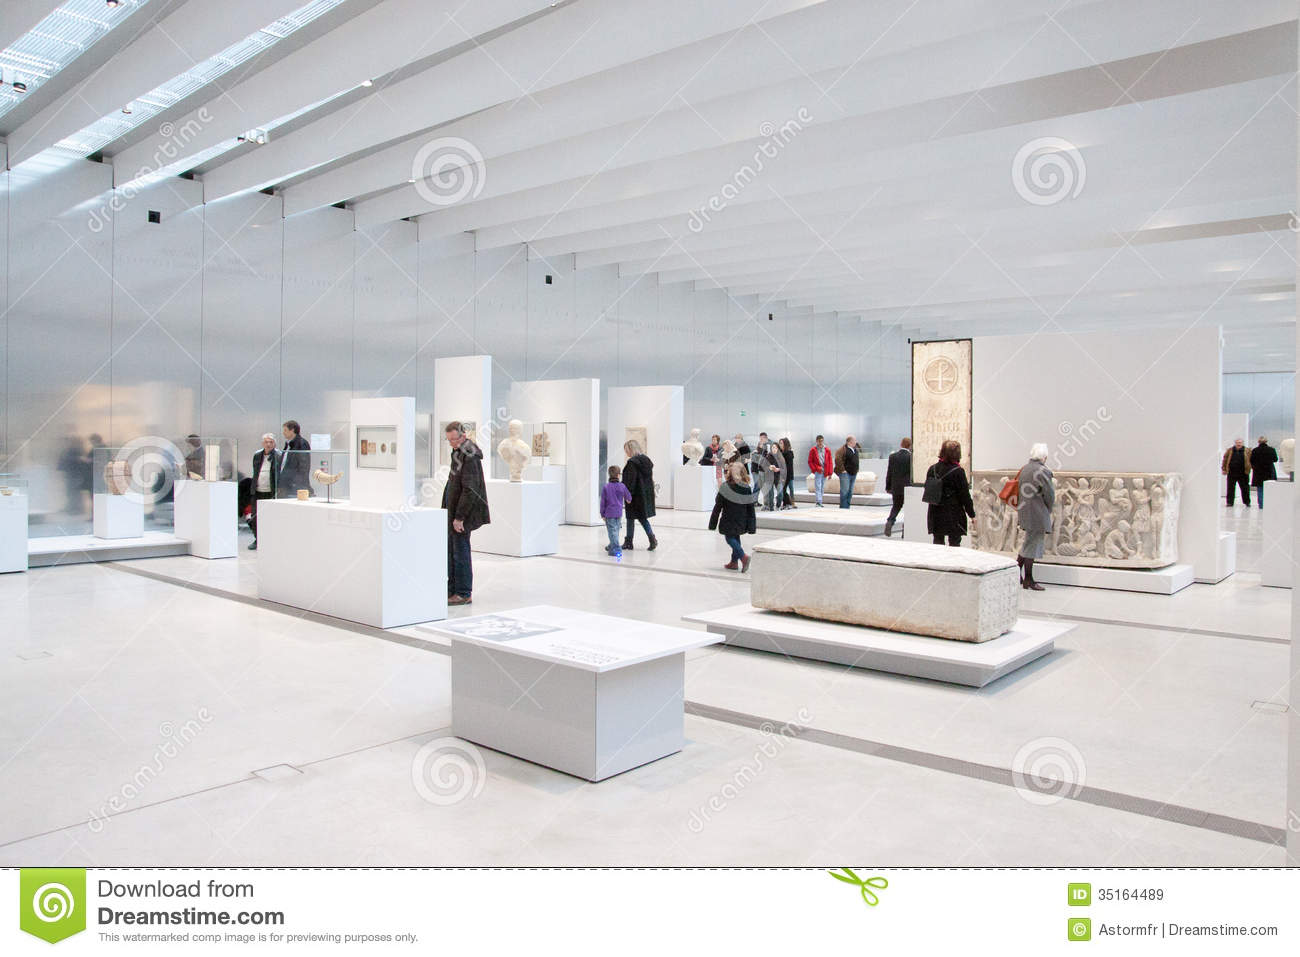 Louvre lens exposition editorial stock image image of for Louvre lens museo